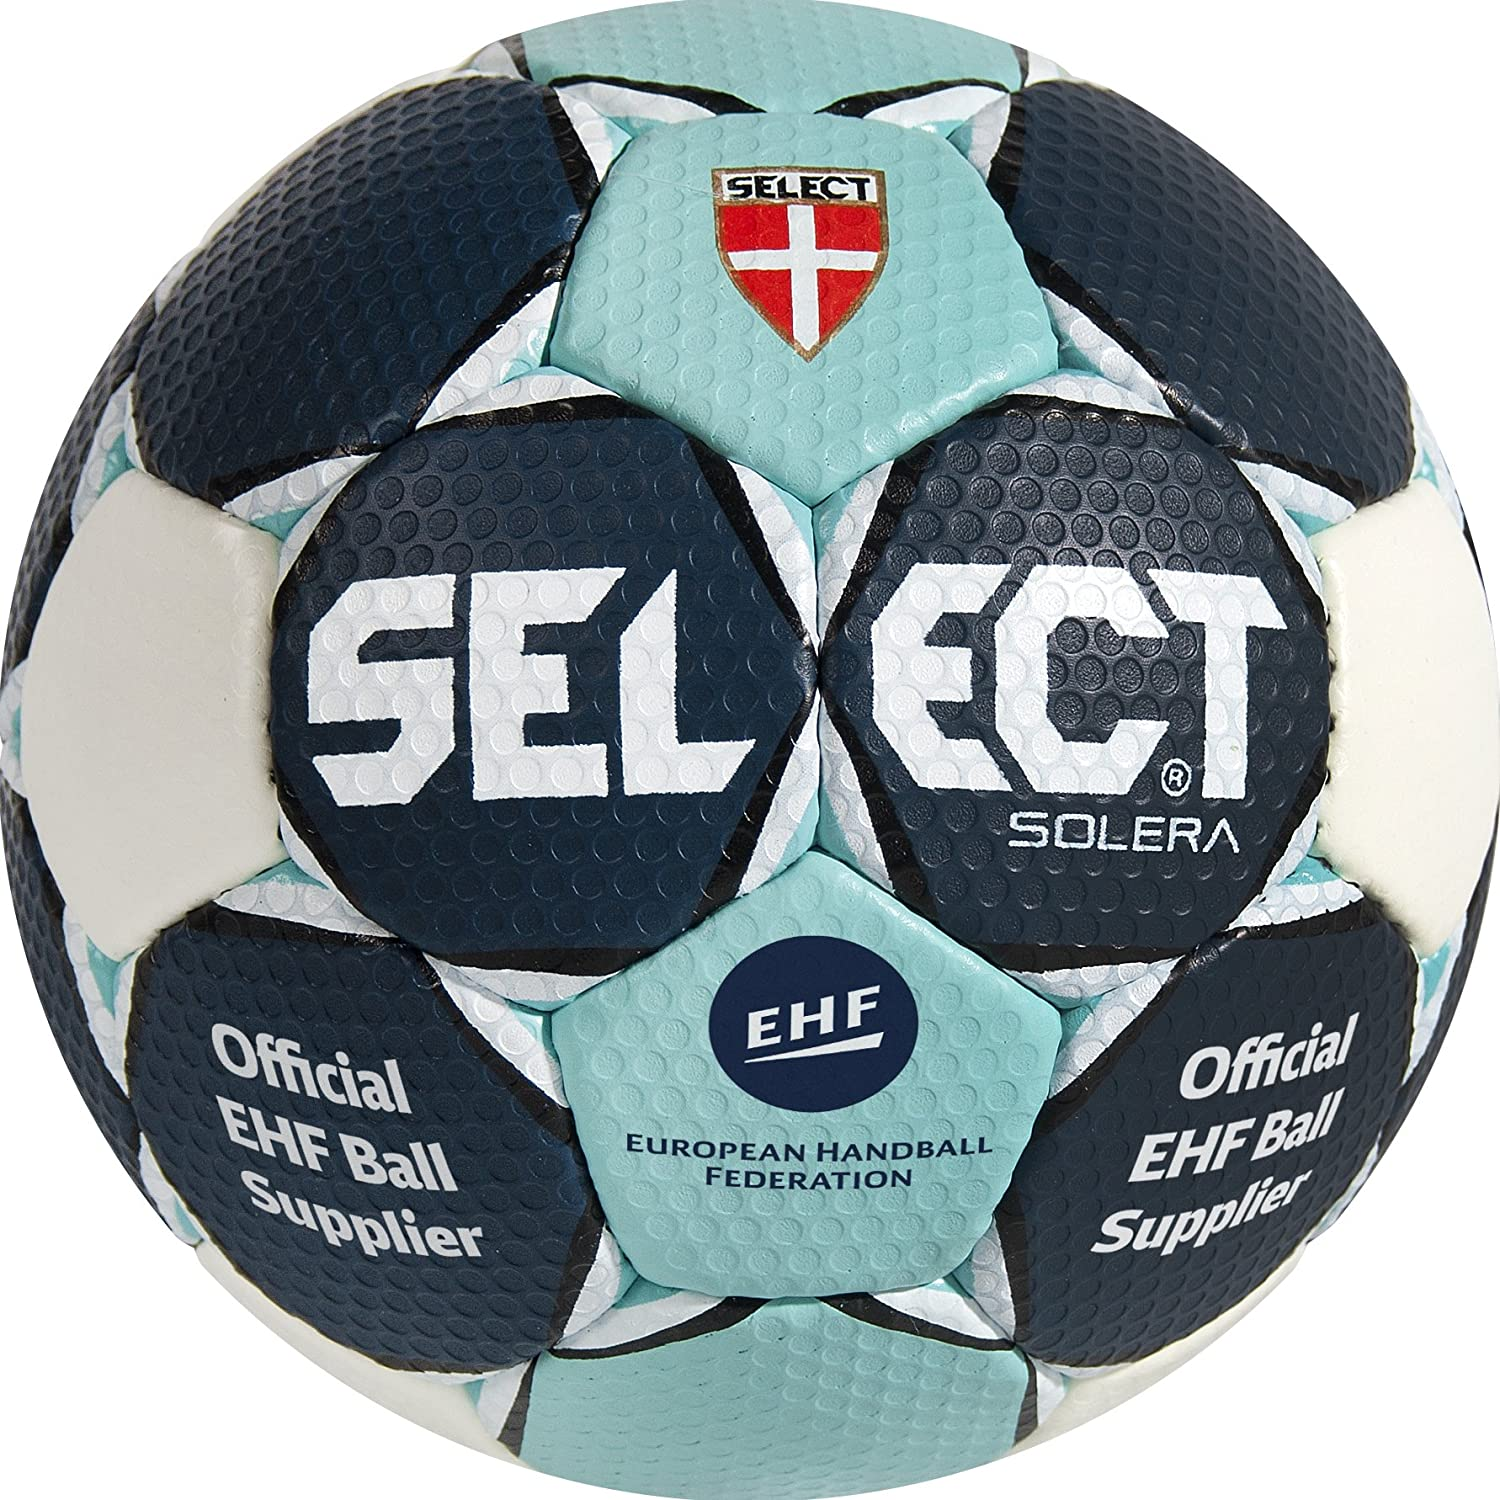 Select Solera Ballon de Handball 407407475